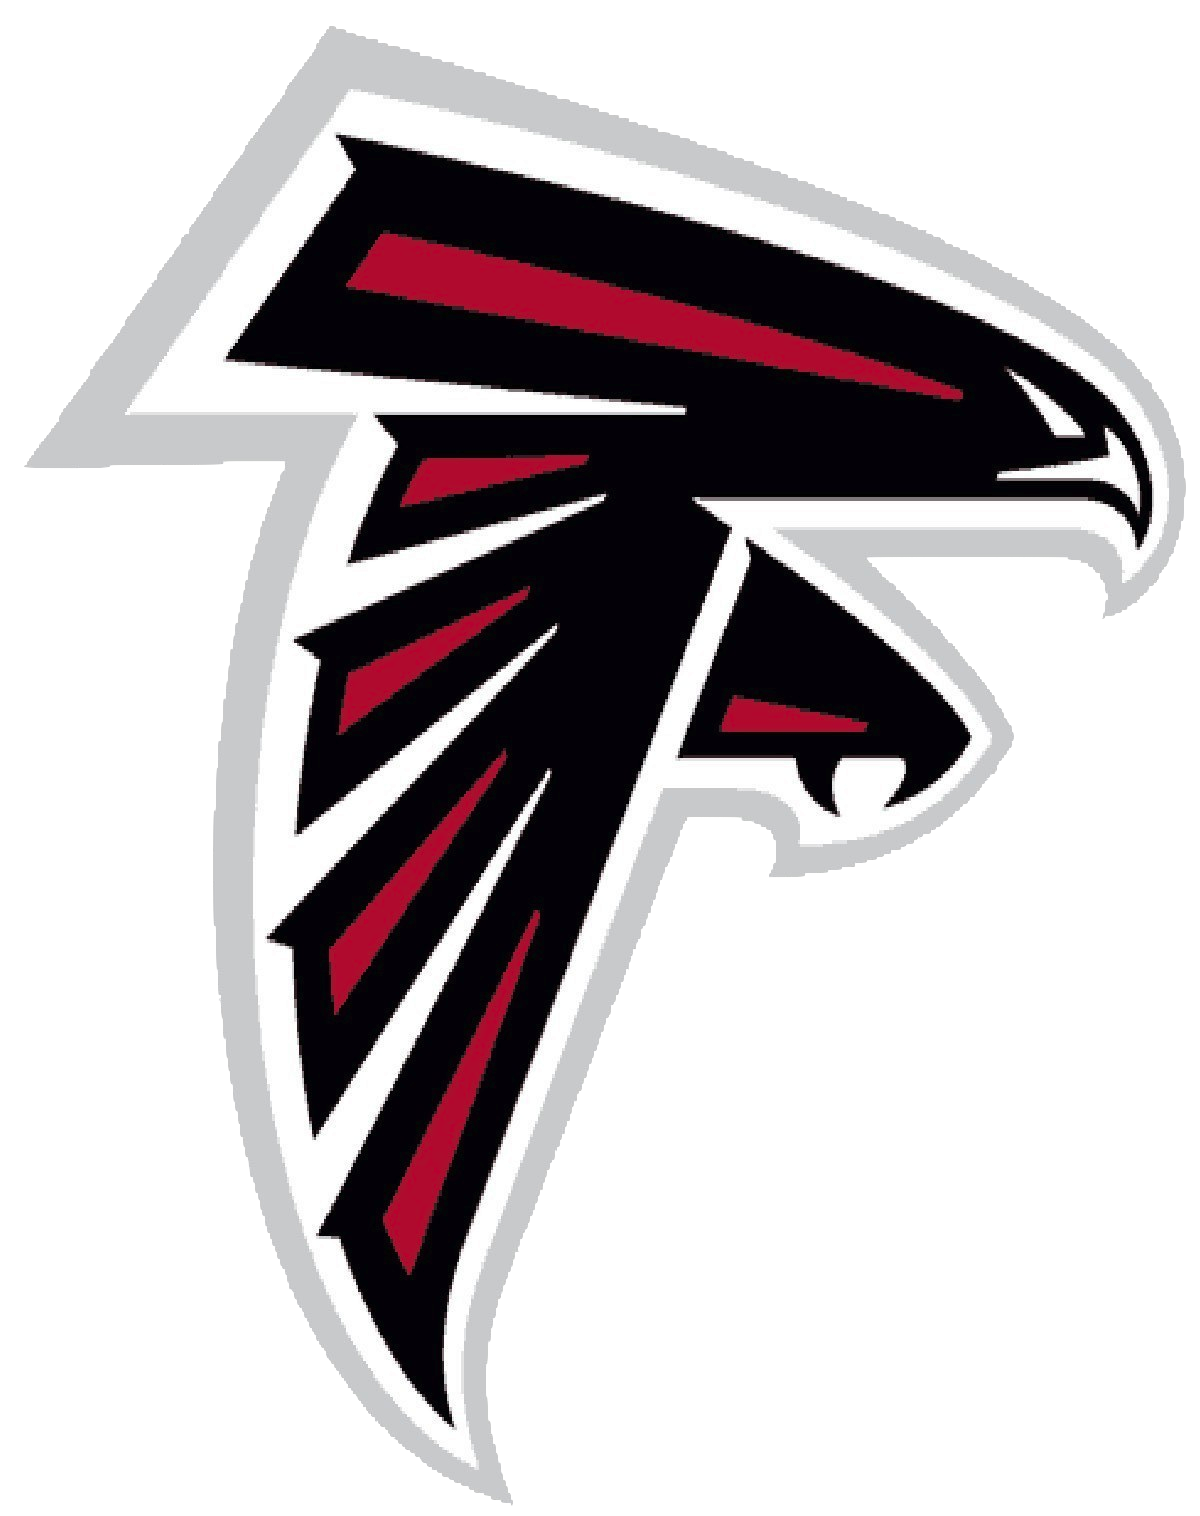 Atlanta falcons logo clipart picture black and white stock images of the ATLANTA FALCONS football logos | Atlanta Falcons ... picture black and white stock